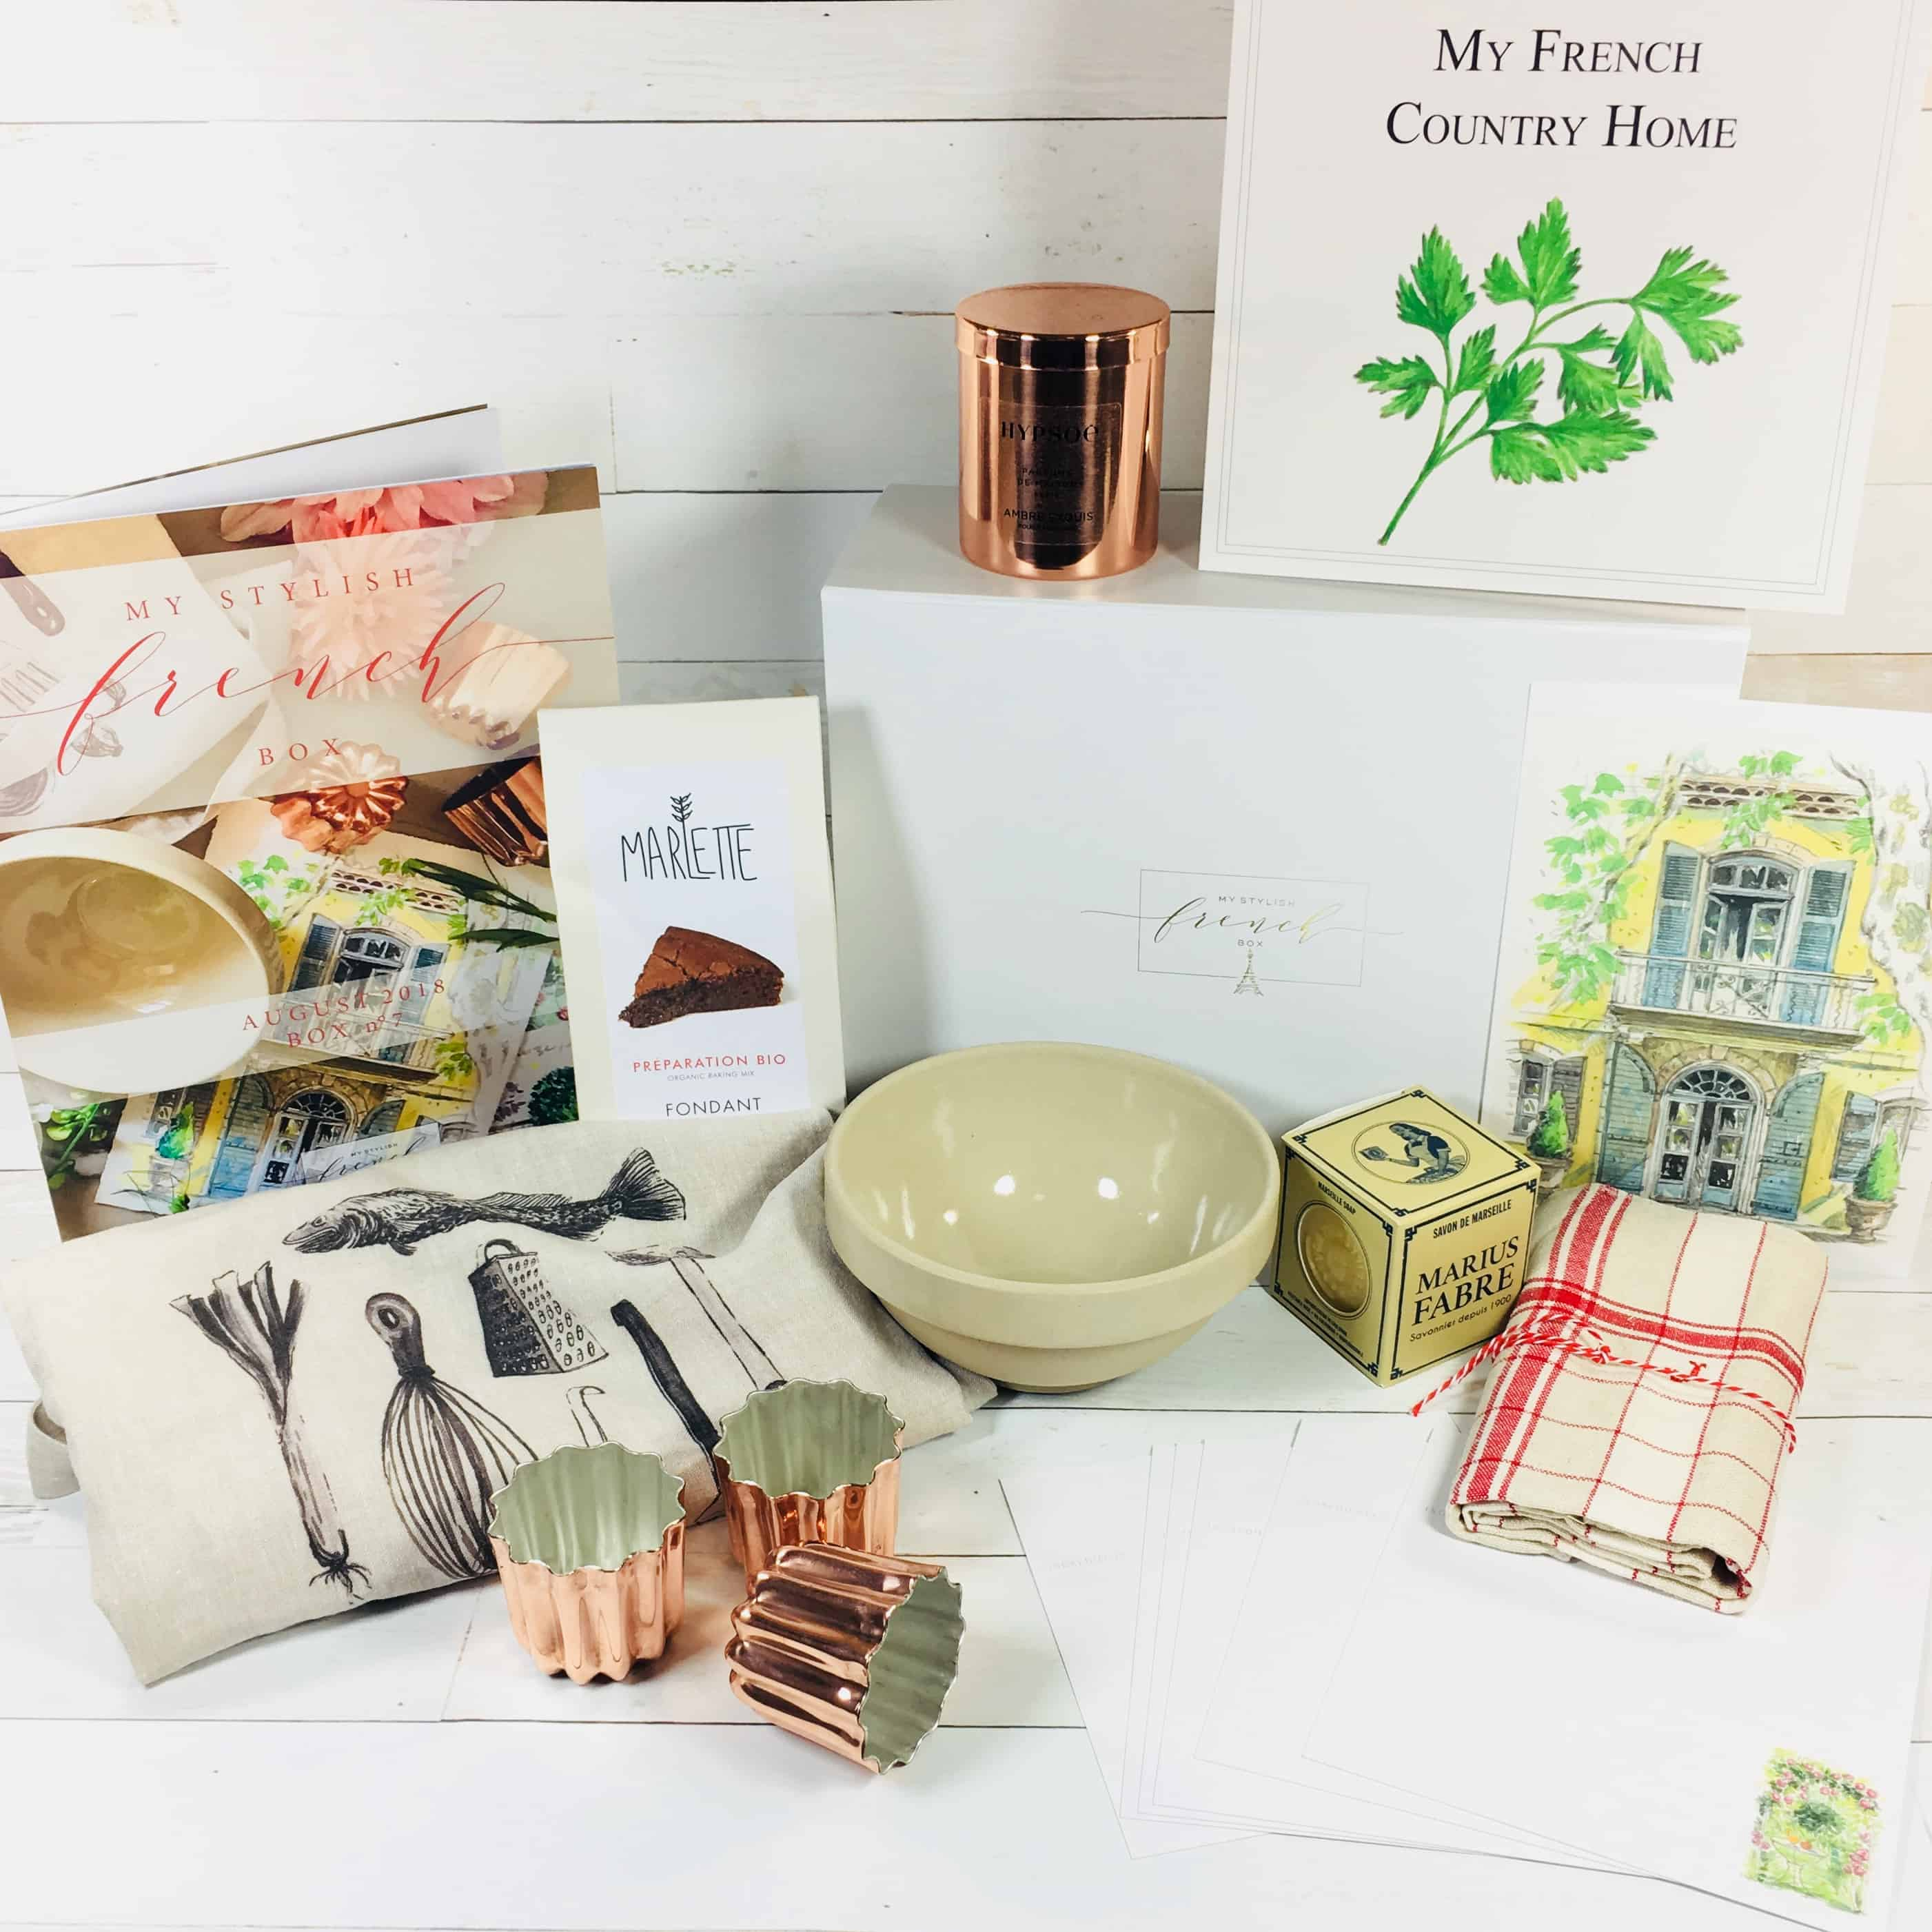 My Stylish French Box August 2018 Subscription Box Review